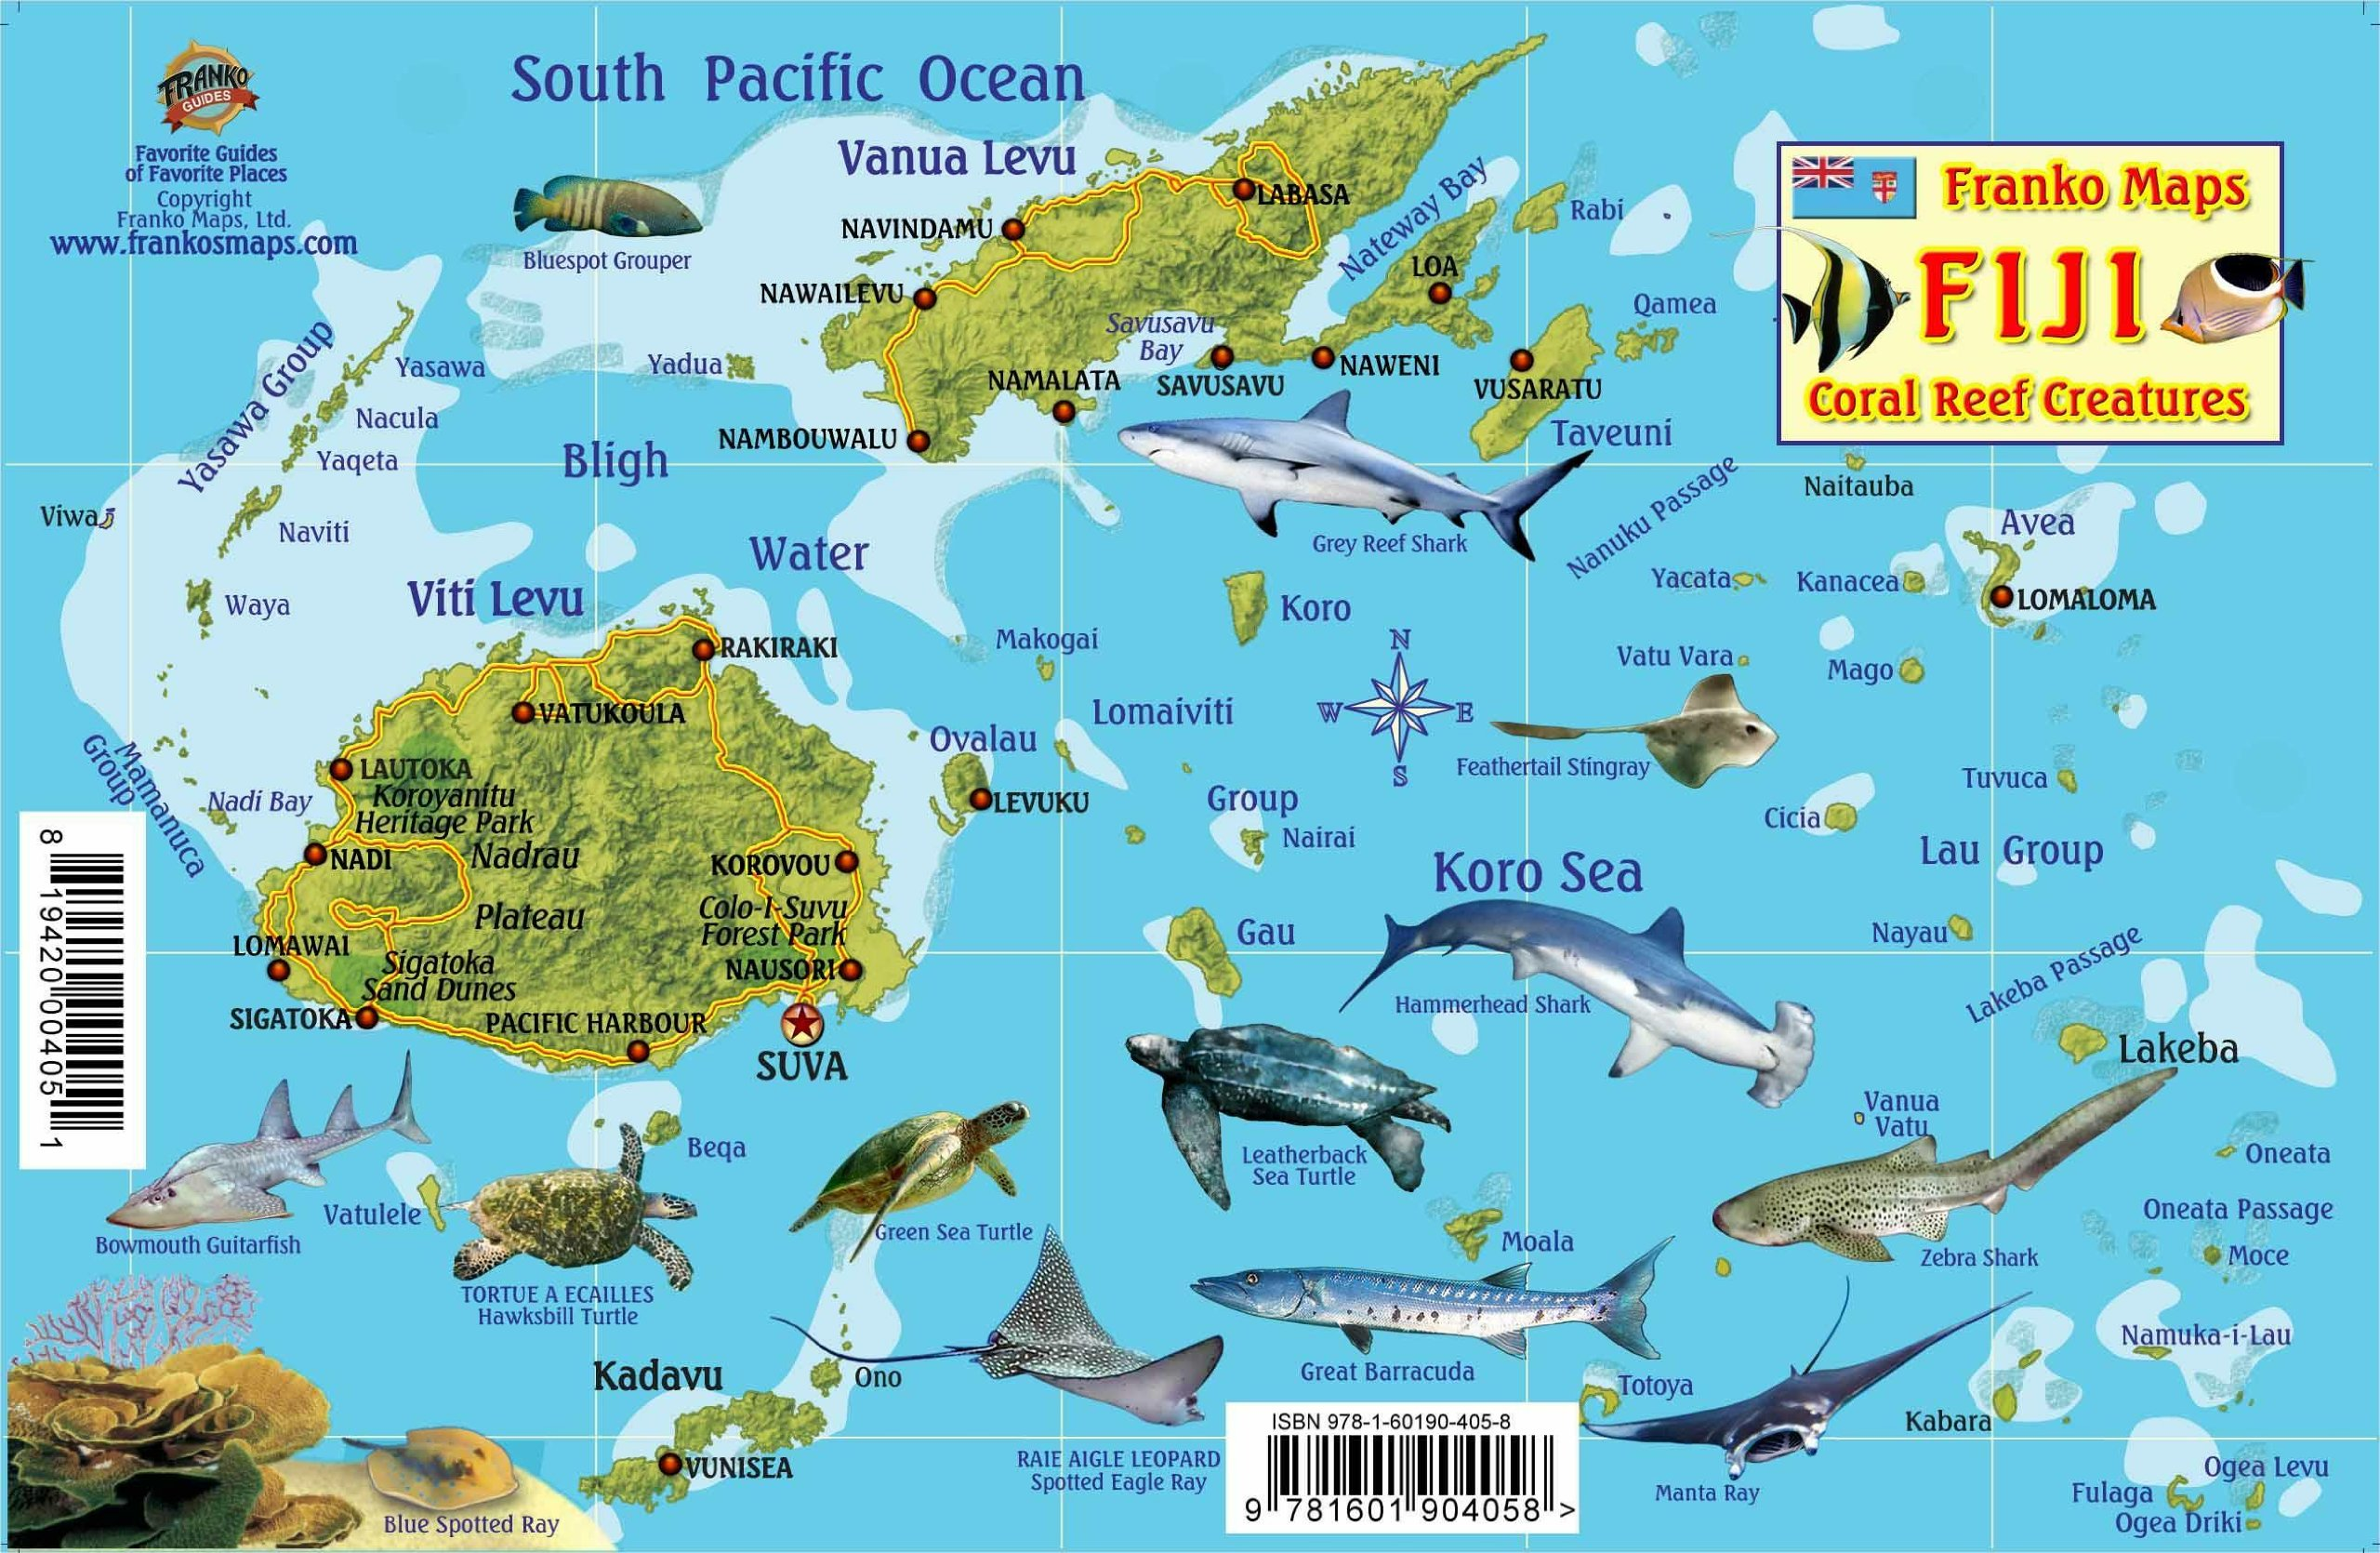 Fiji map reef creatures guide franko maps laminated fish card fiji map reef creatures guide franko maps laminated fish card franko maps ltd 9781601904058 amazon books gumiabroncs Image collections